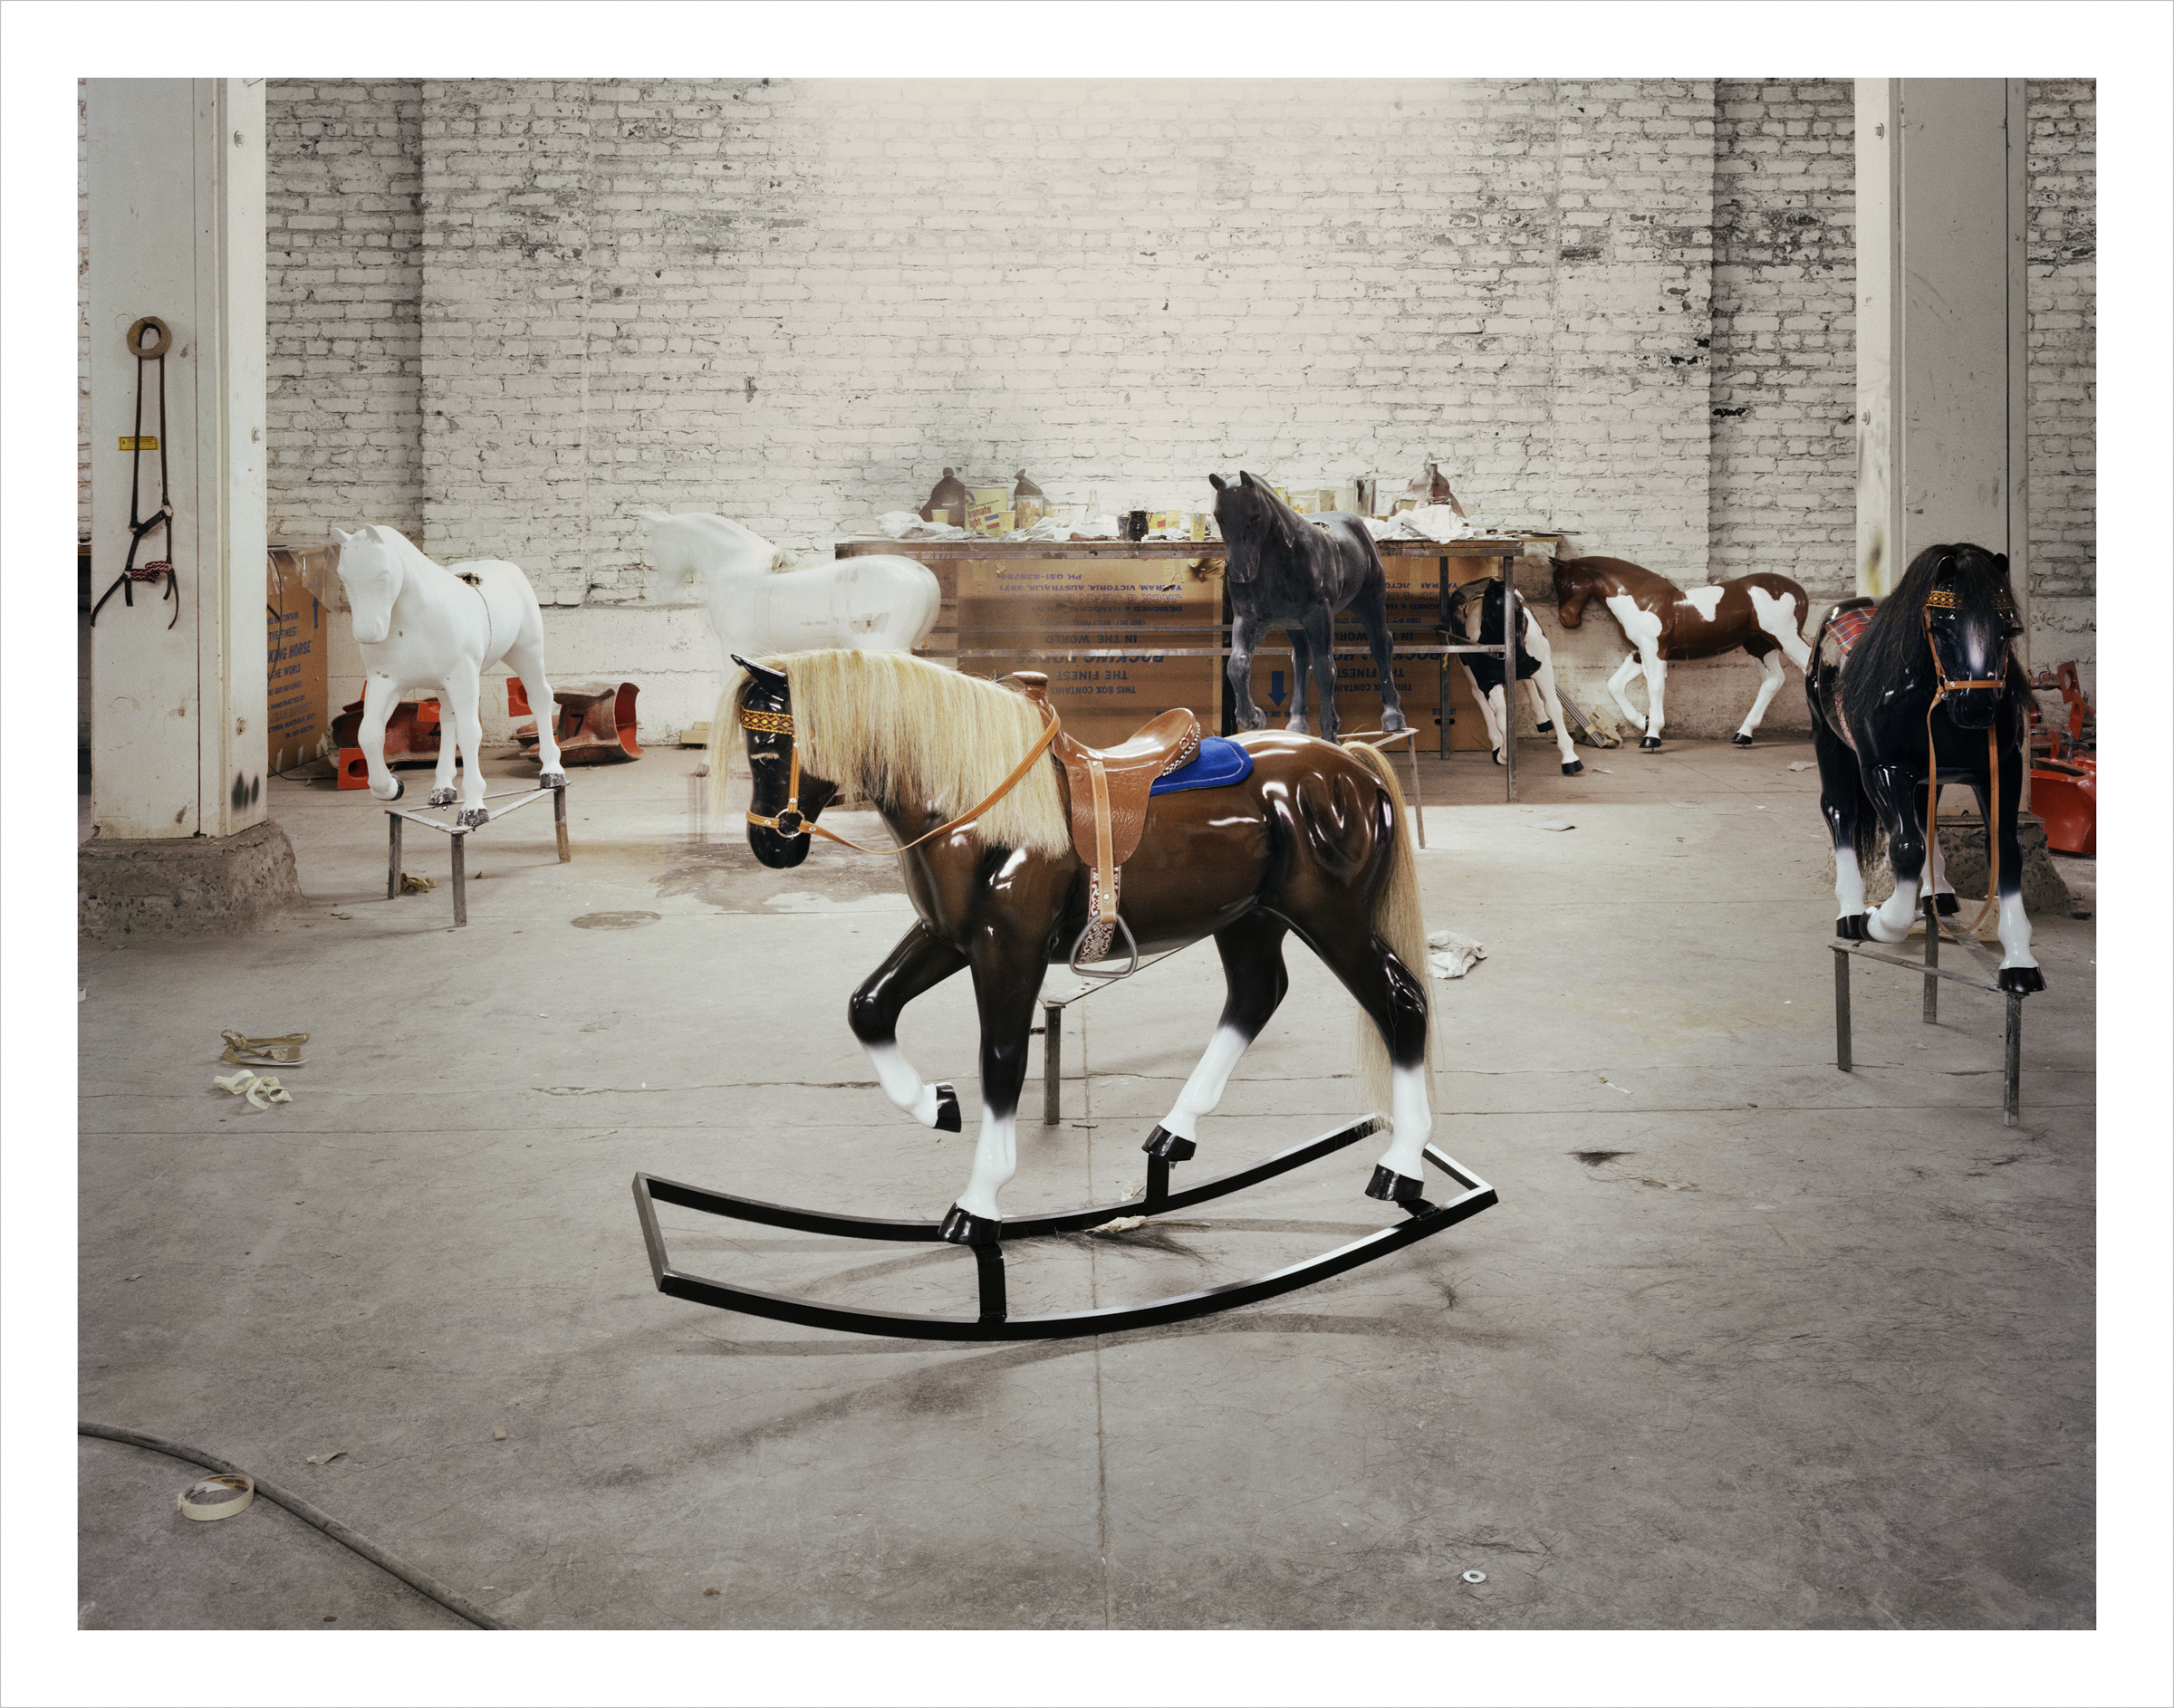 Hobby Horse Factory, Shipley Street, 1982 Archival Pigment Print, 2016 16 x 20 inches, edition of 5 20 x 24 inches, edition of 2 30 x 40 inches, edition of 2